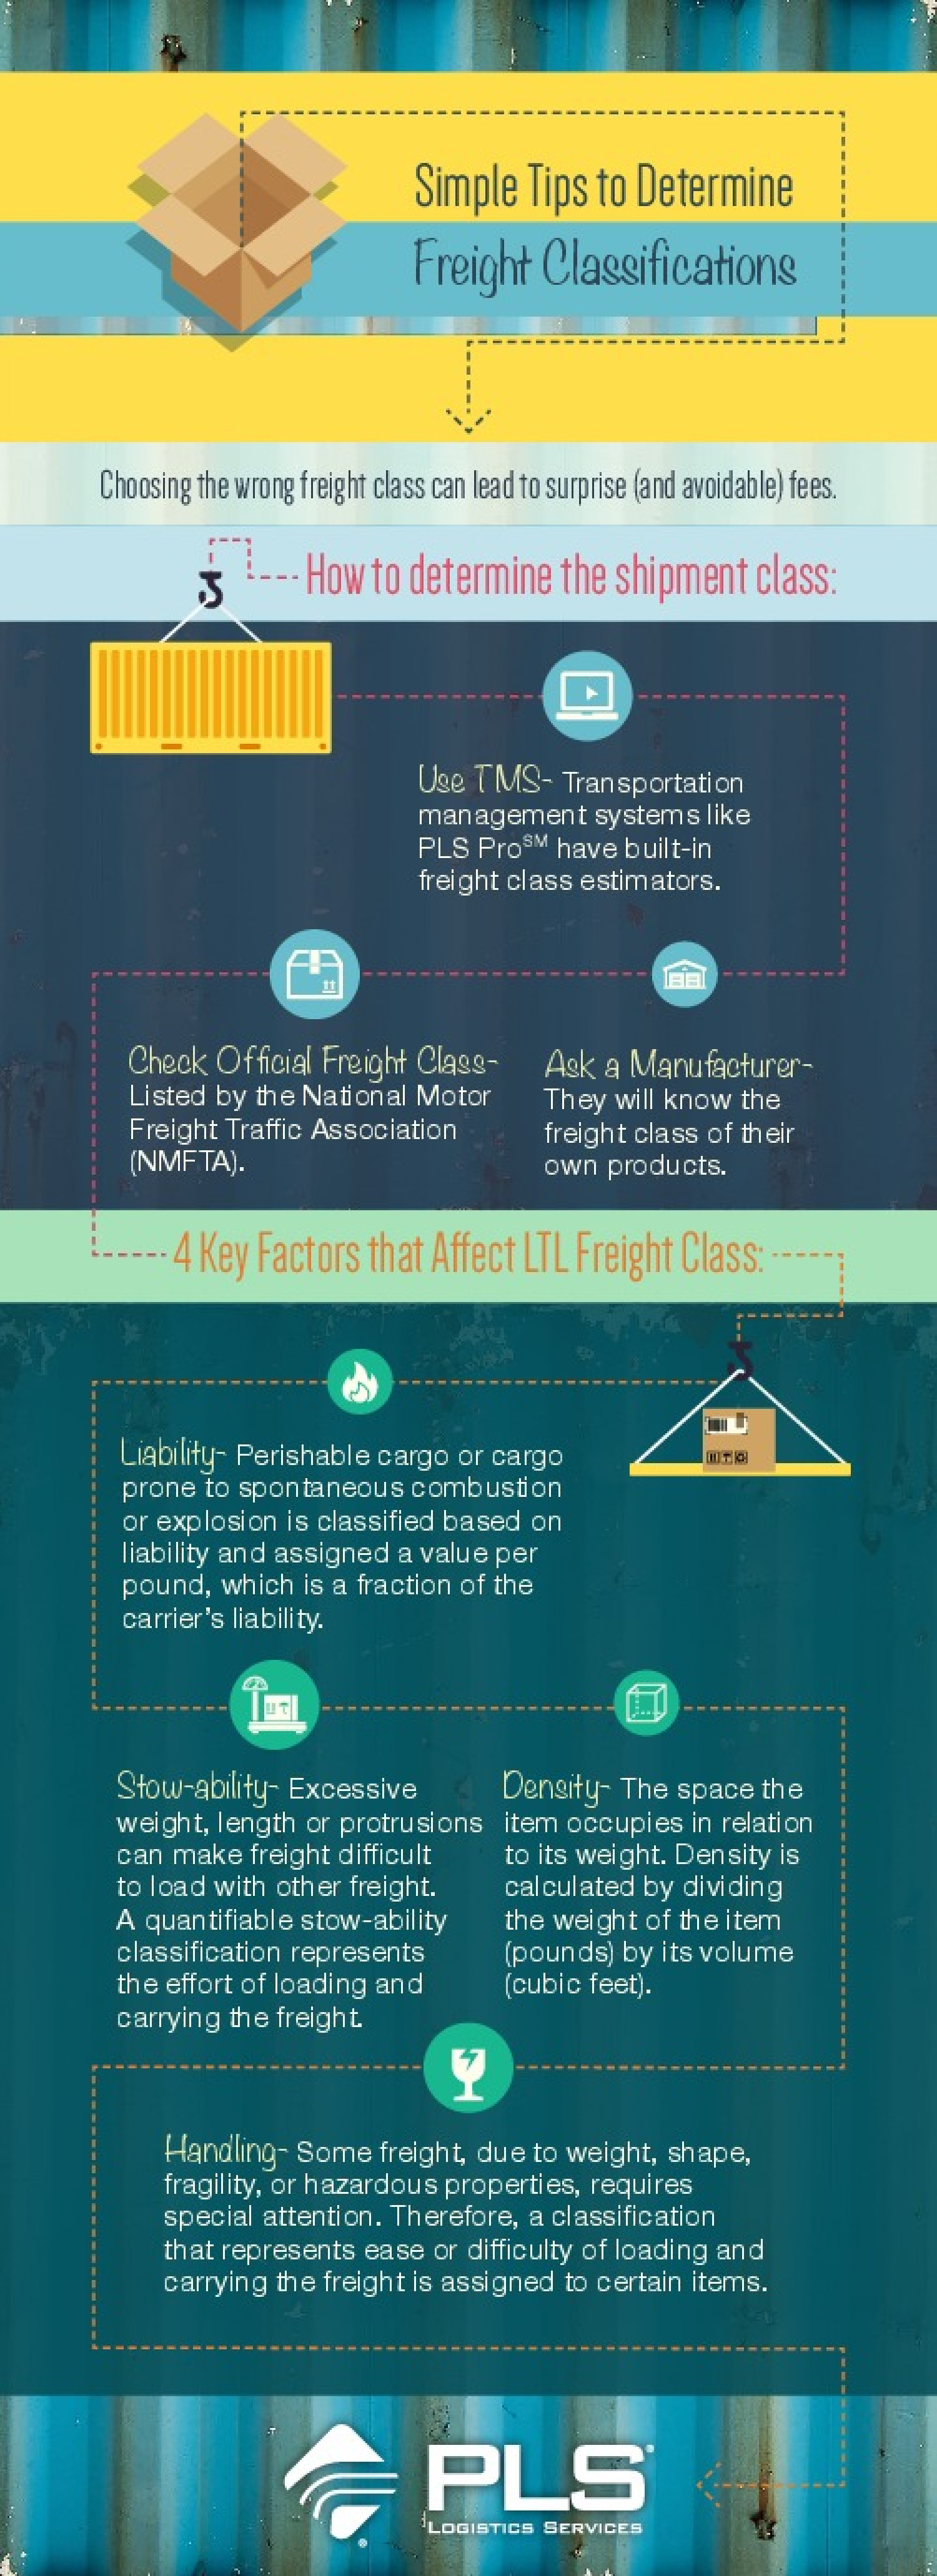 Understanding Freight Classifications Infographic